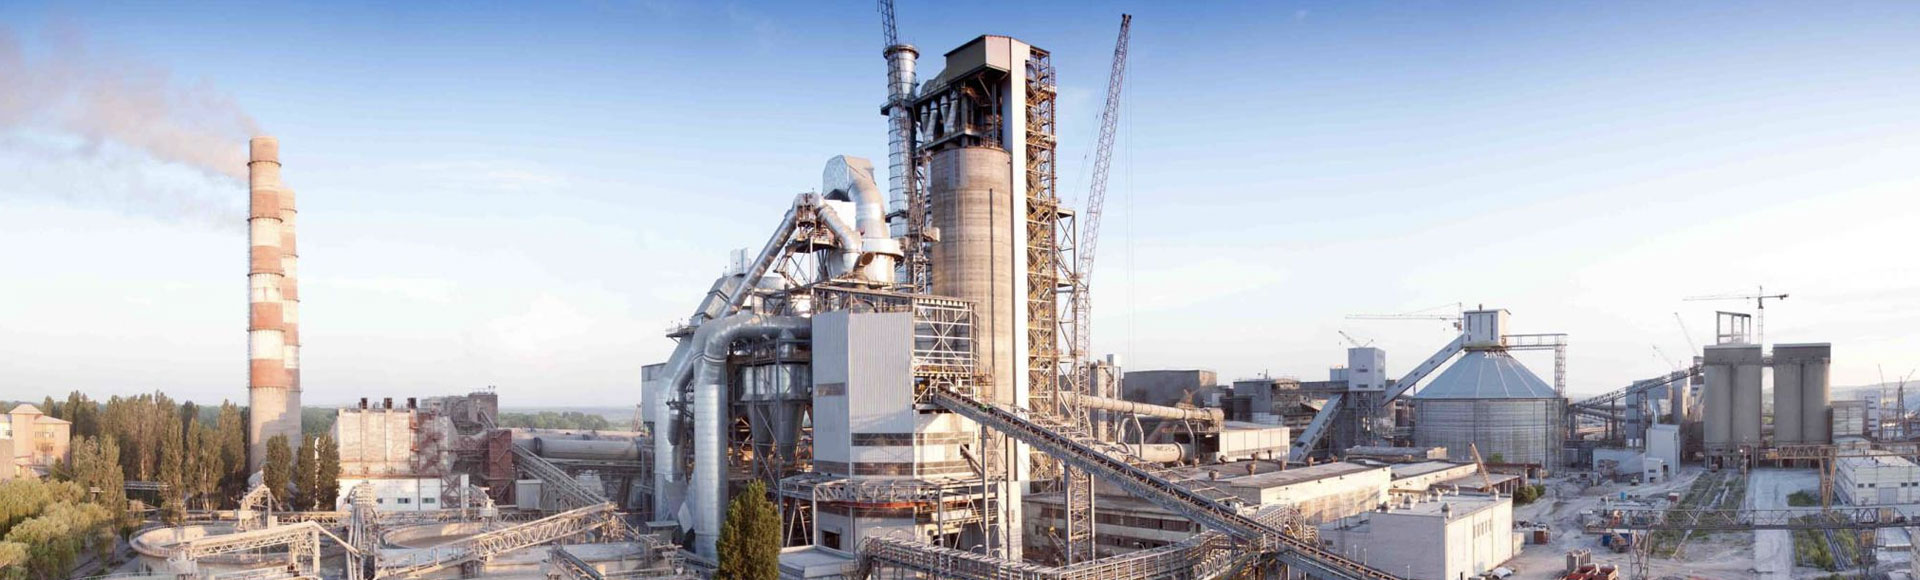 Thermax's Cinder Recovery System Helped Reduce Loss of Ignition at a Cement Plant in Karnataka